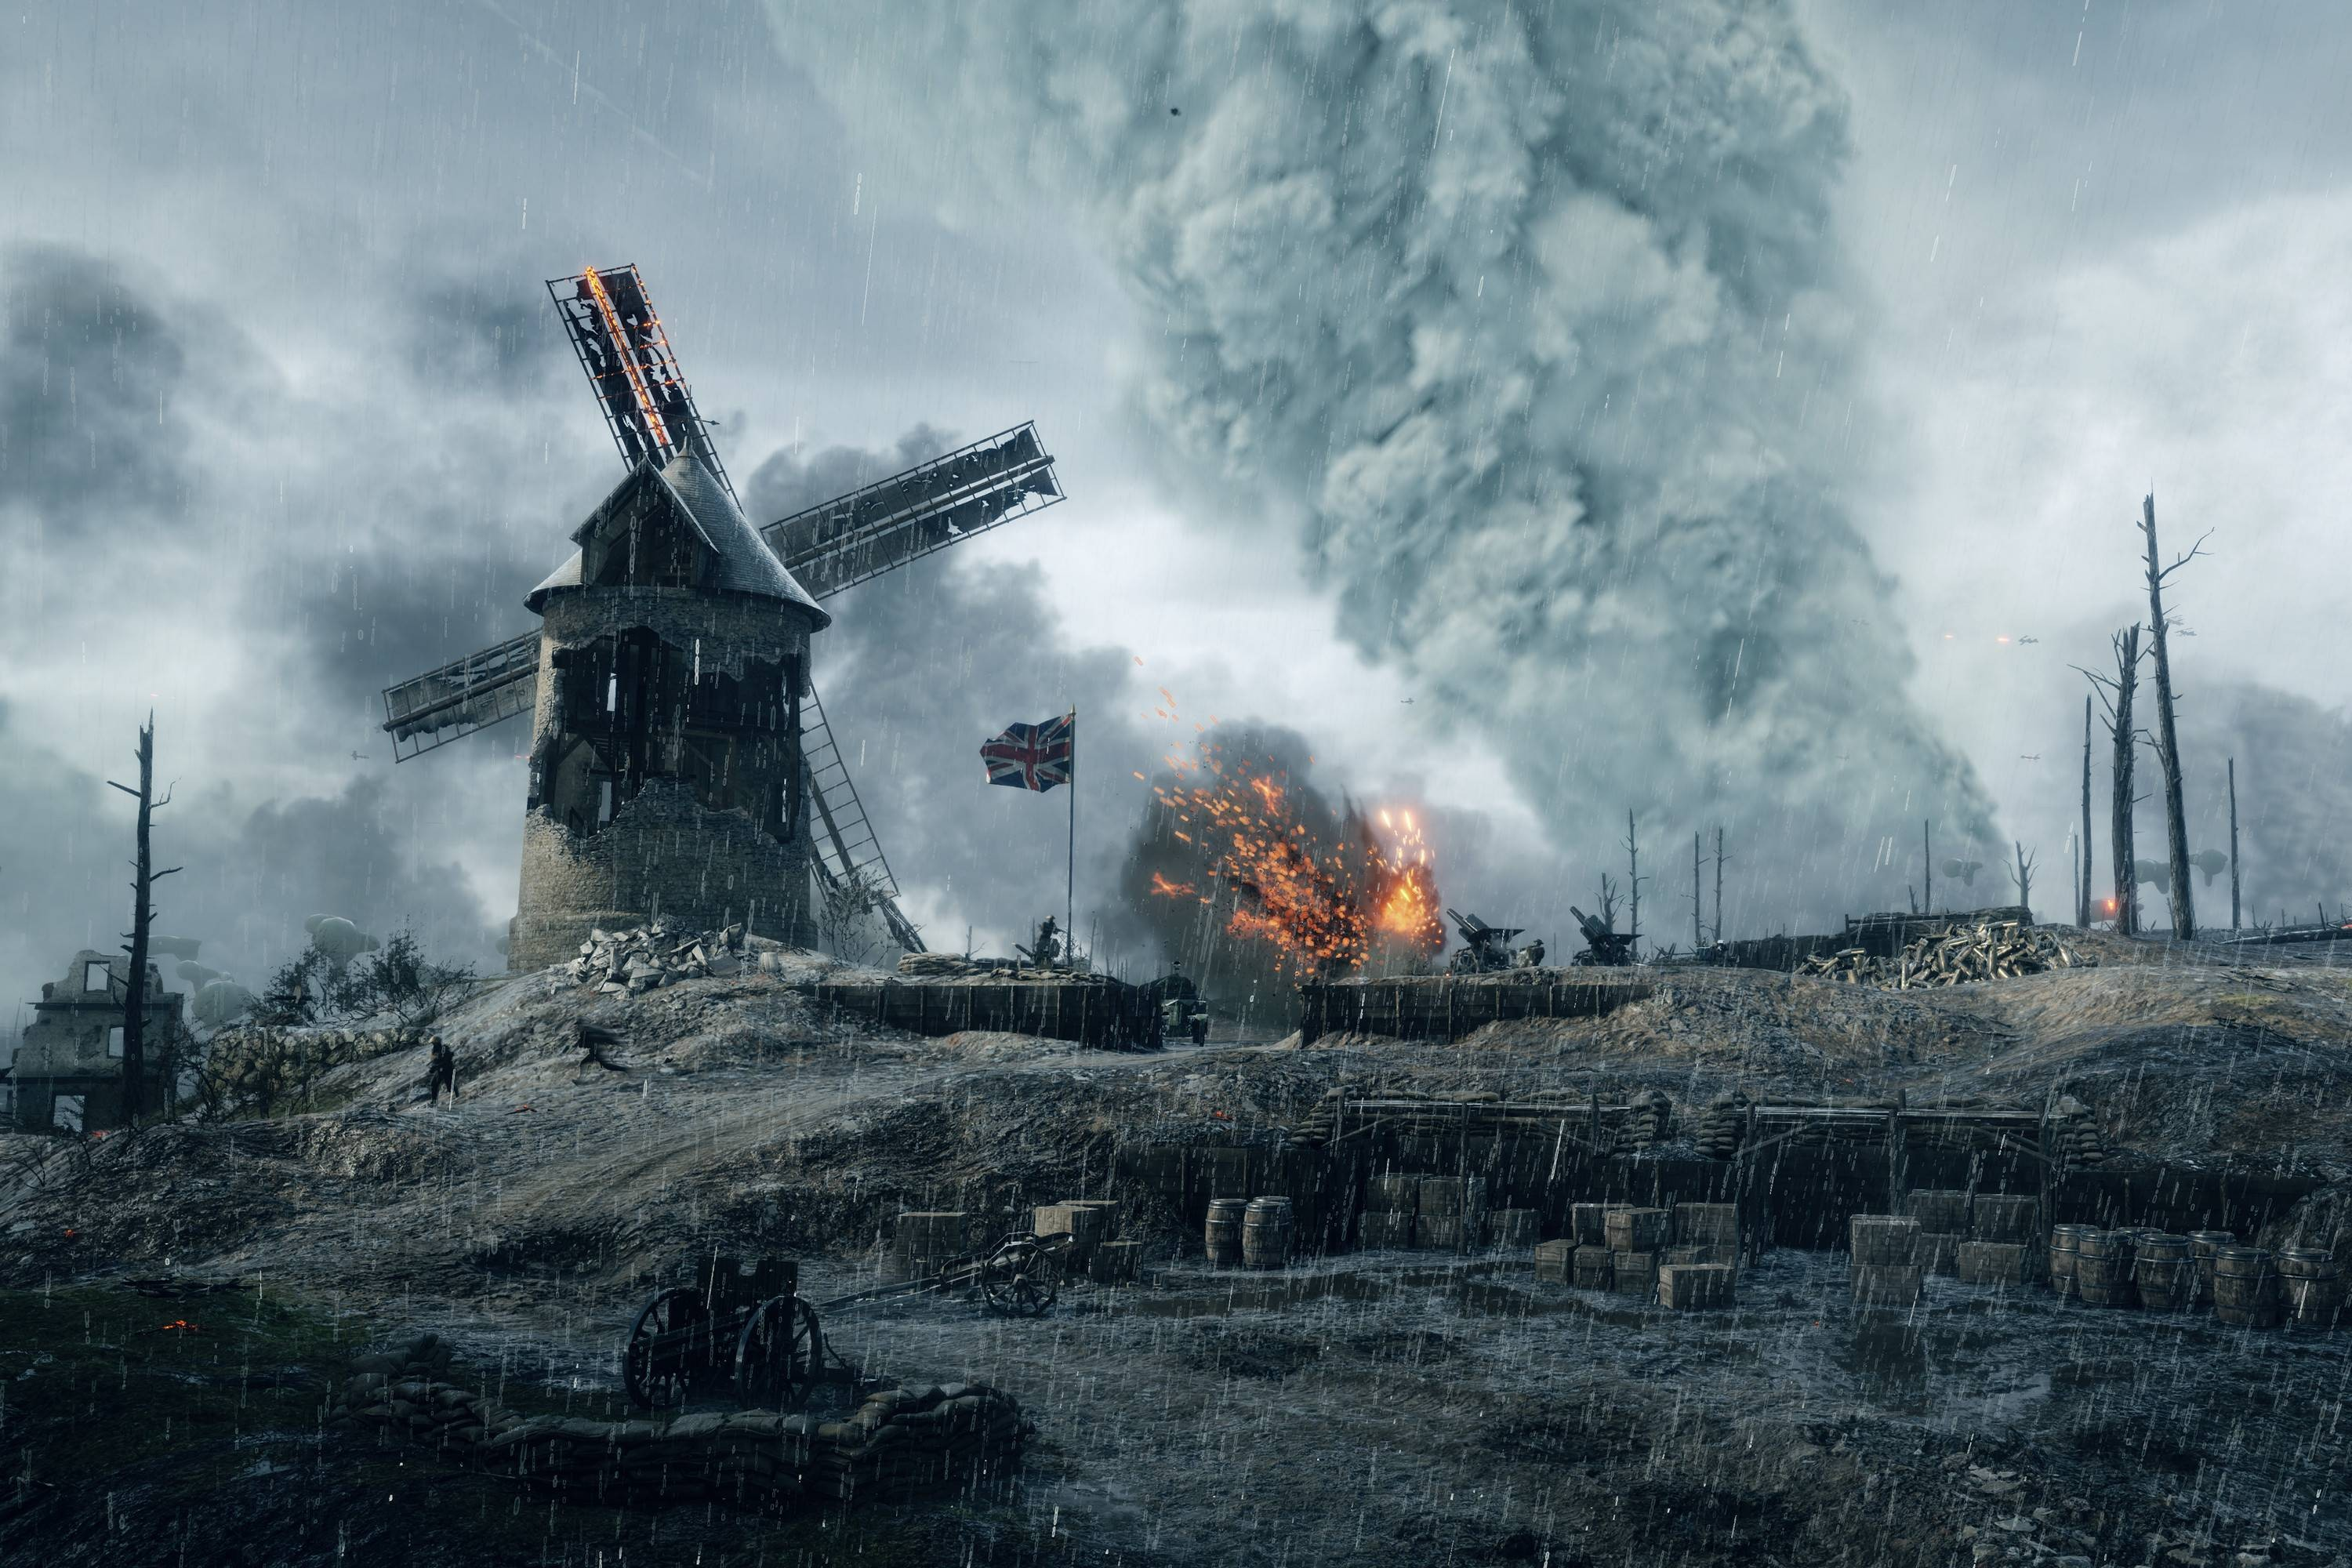 Wallpaper battlefield 1 best games of 2016 shooter for Terengganu home wallpaper 2016